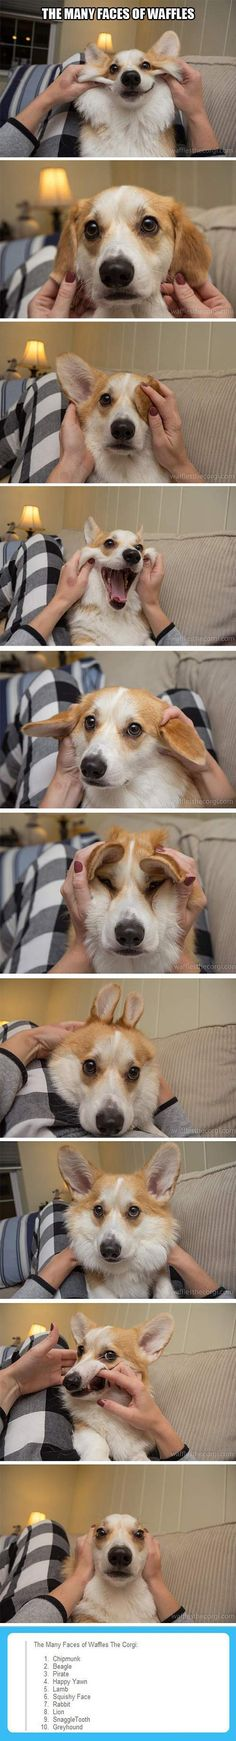 Dump A Day Funny Pictures Of The Day - 105 Pics